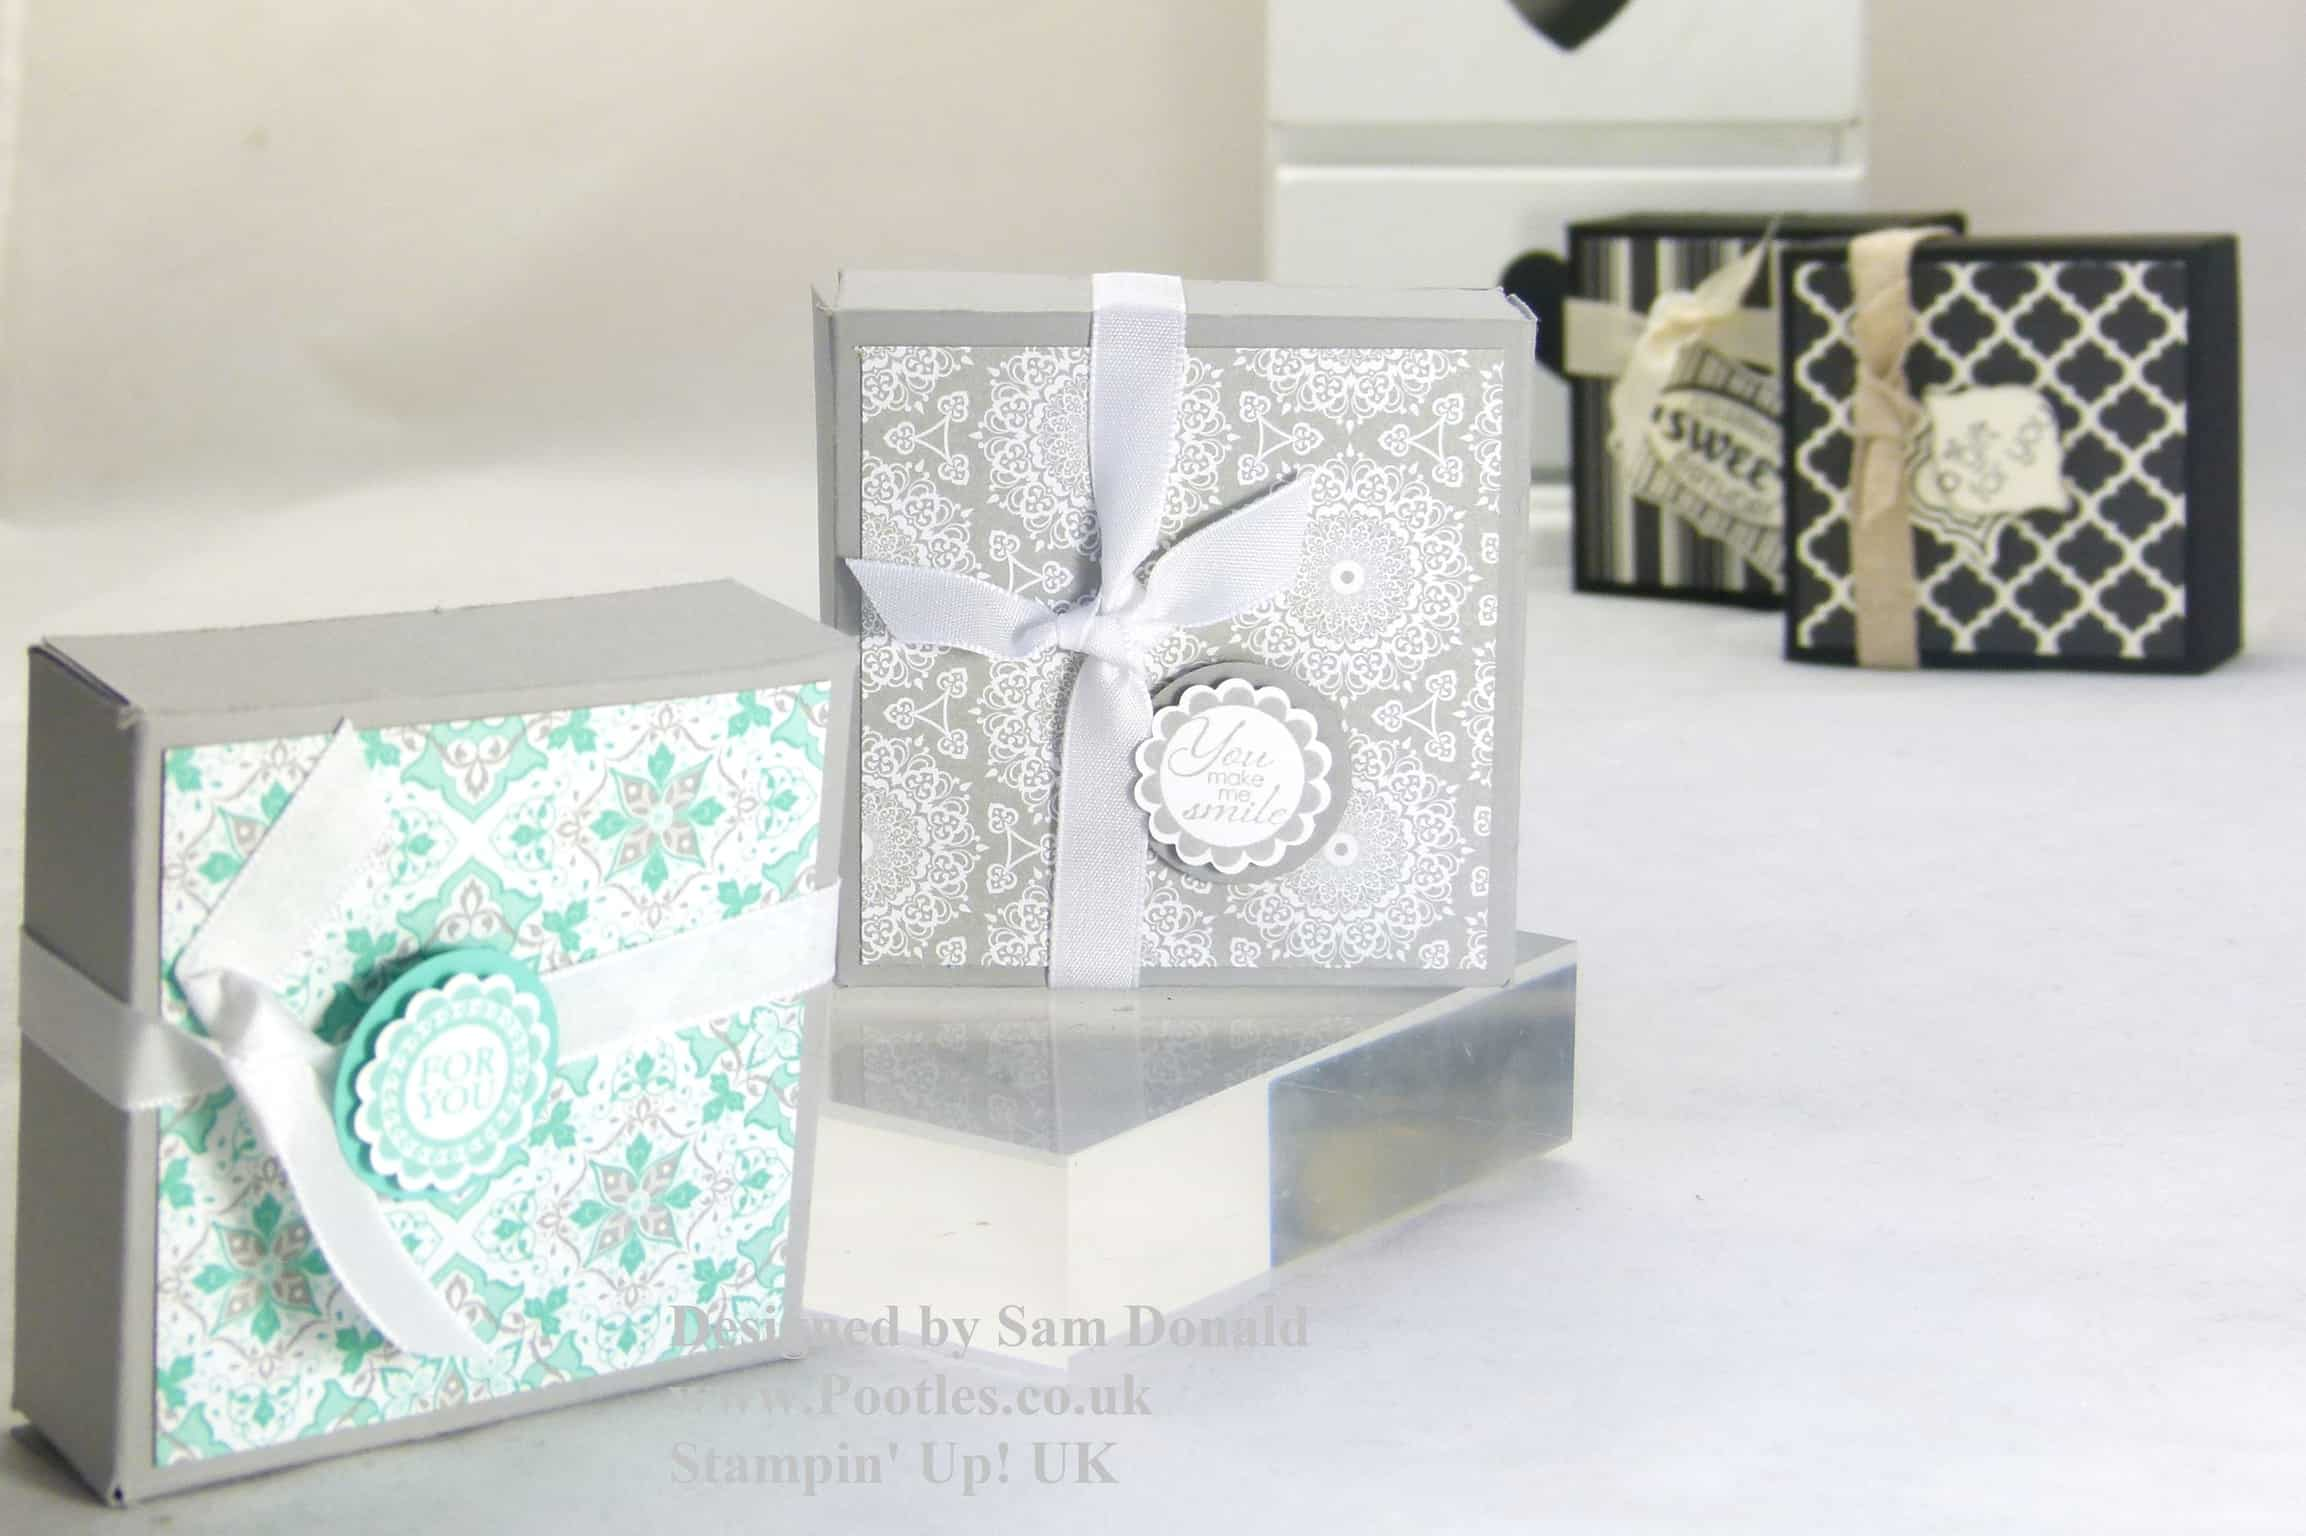 Stampin Up 2 Boxes from one piece of Cardstock 3